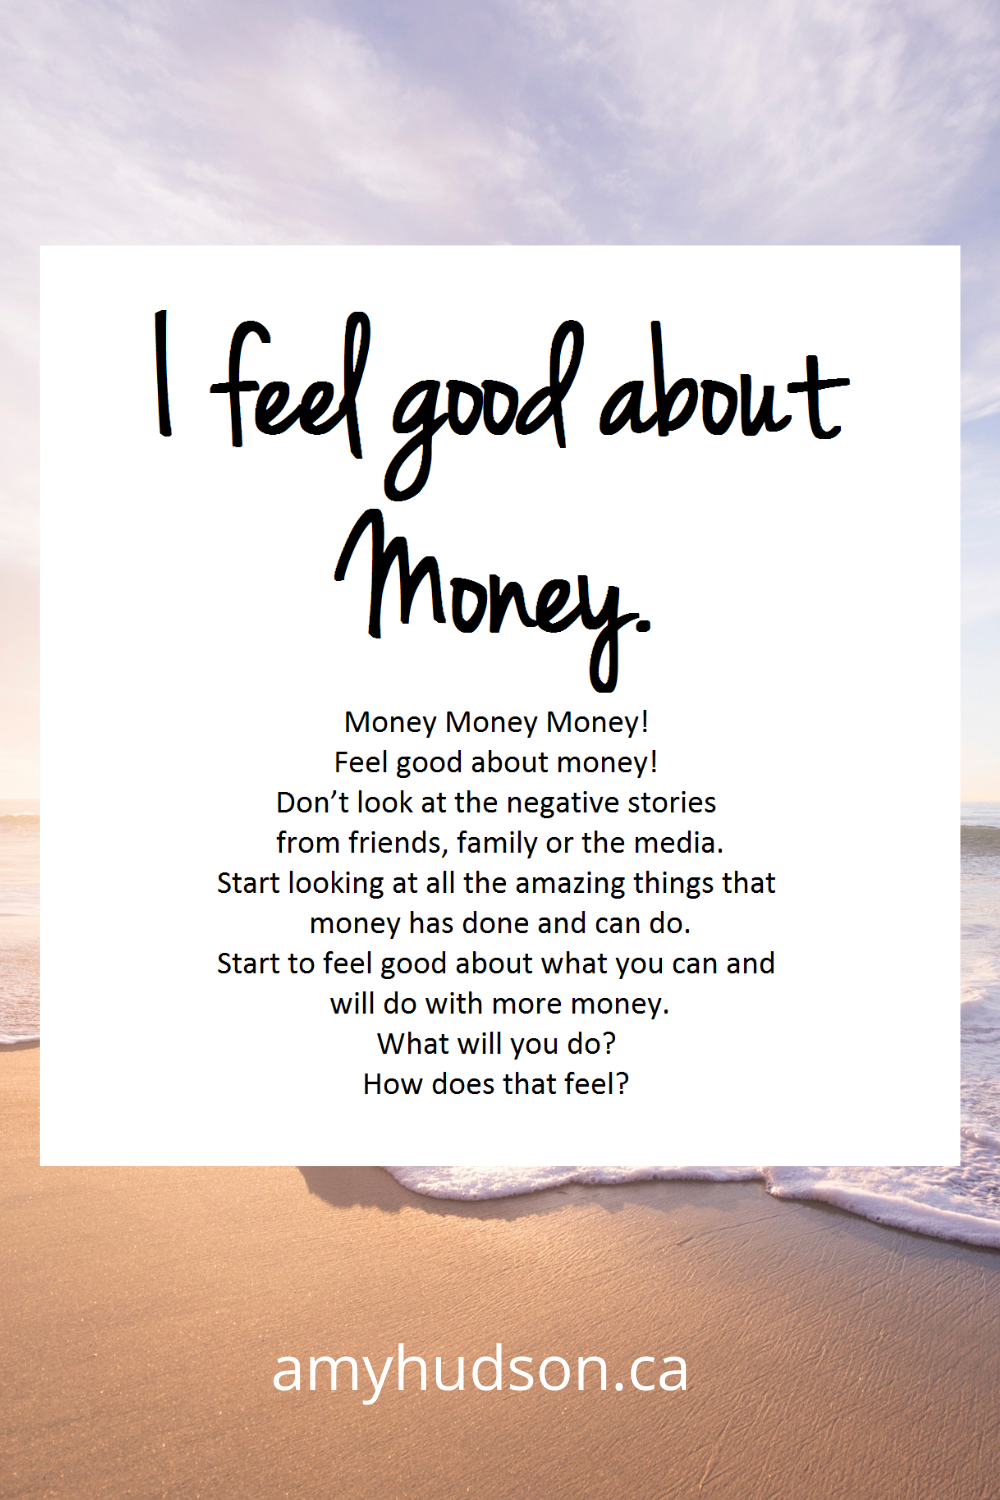 Money Mantra Oracle Card - I feel good about money.